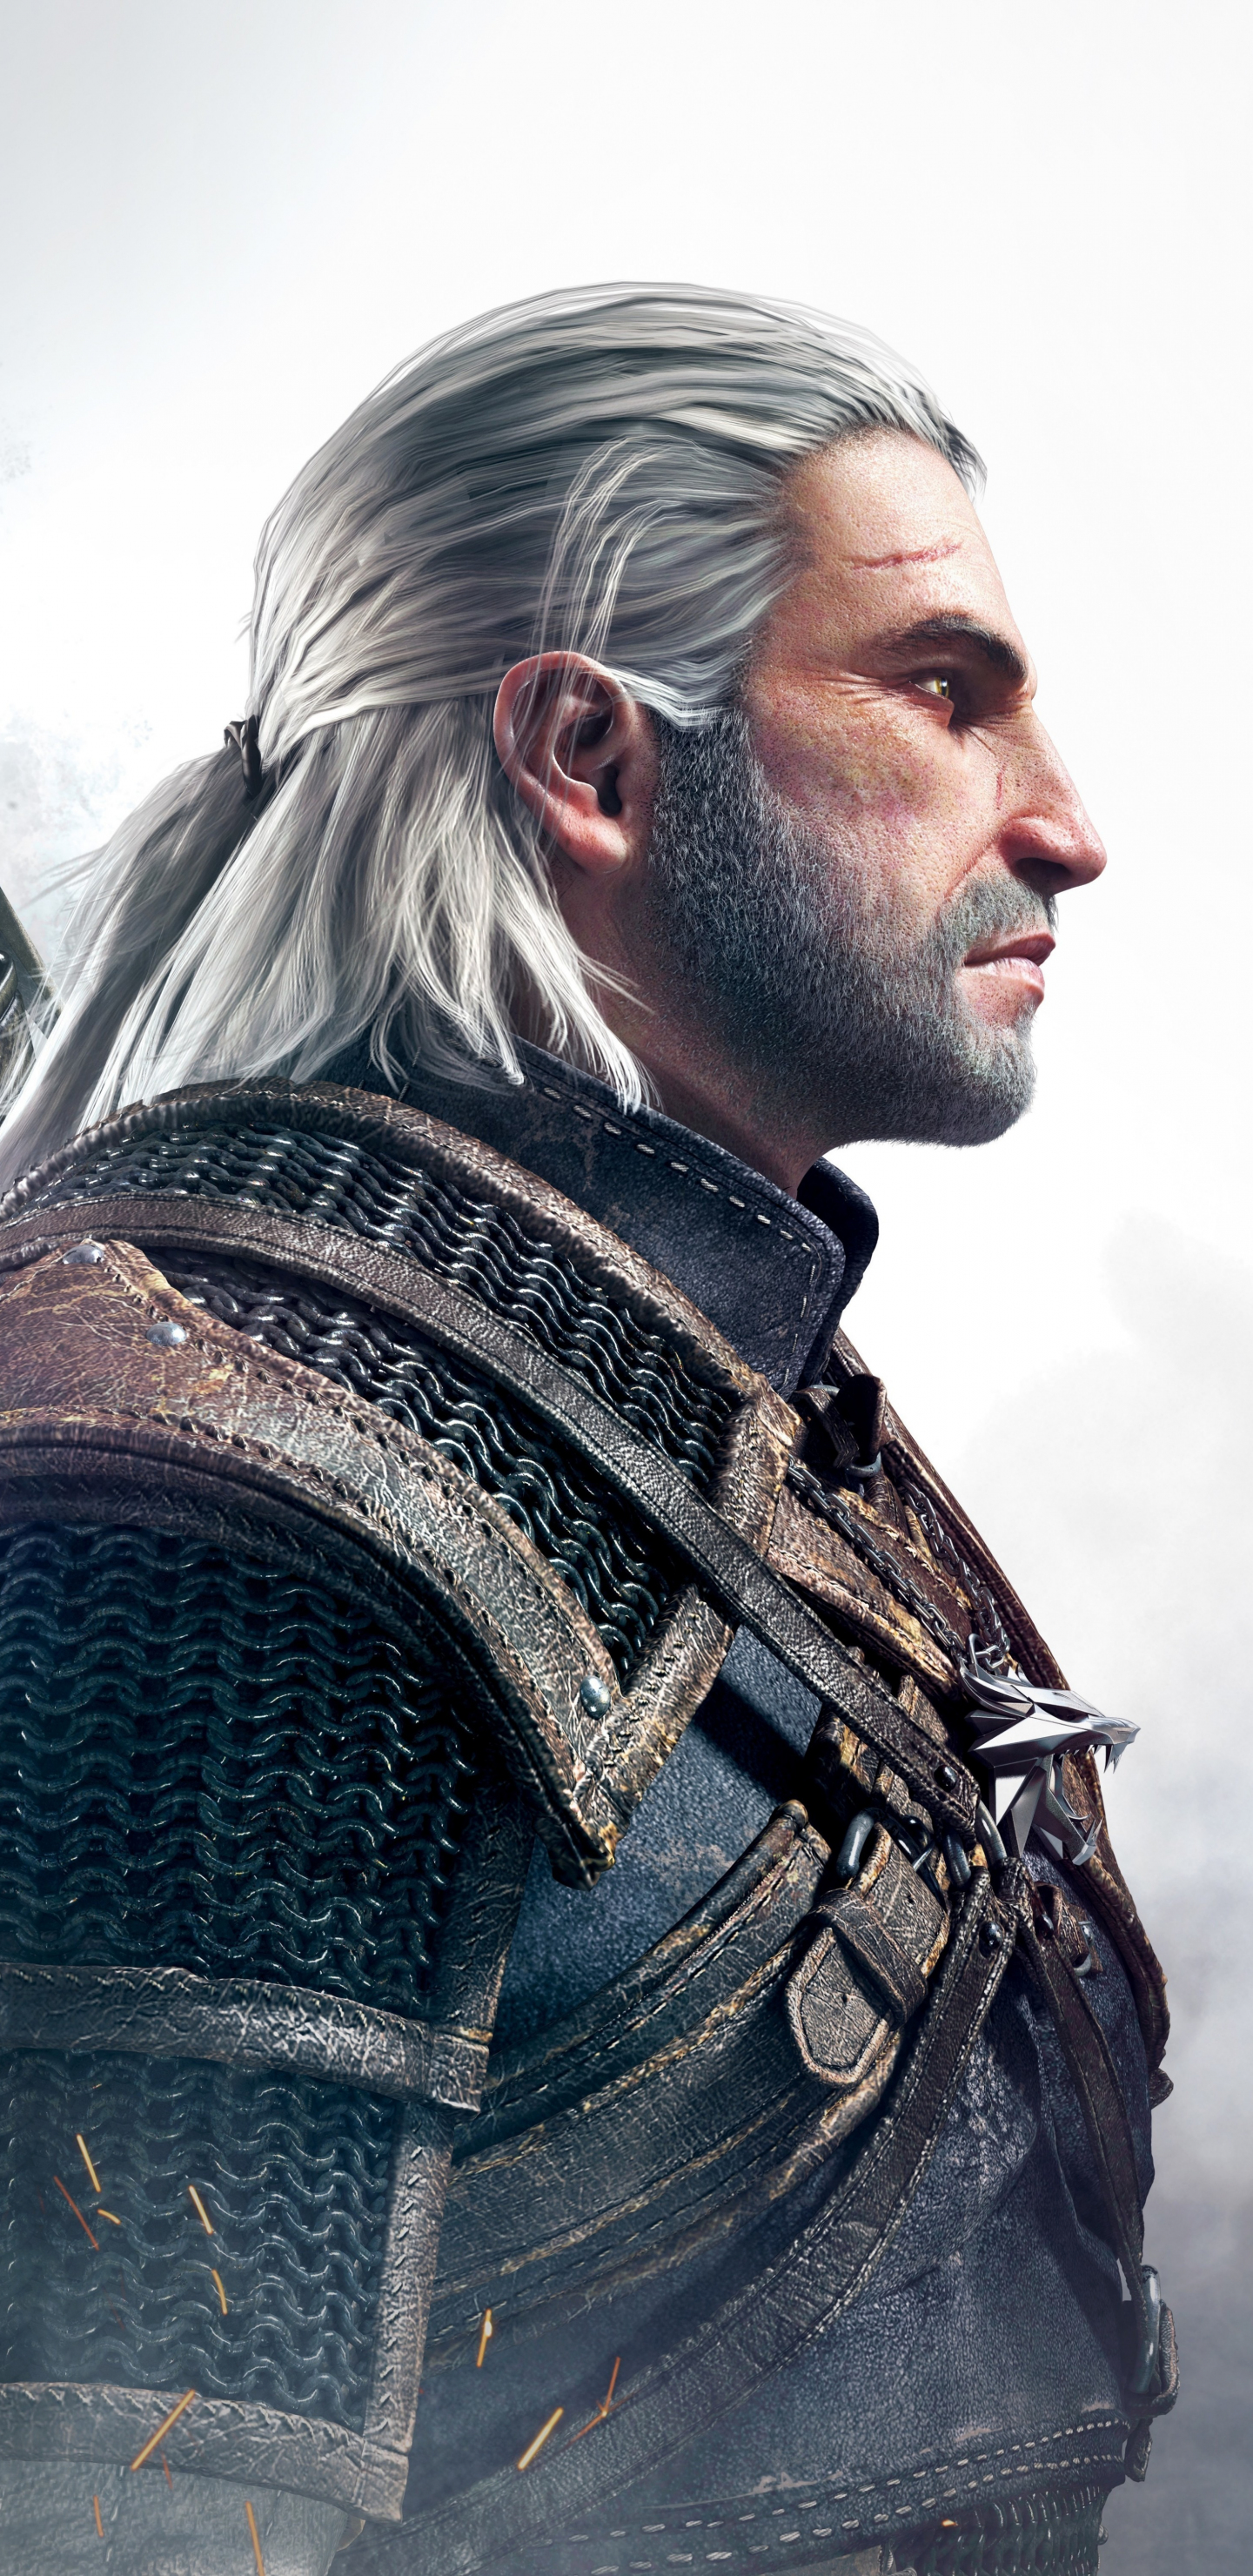 Wallpaper 4k Samsung Galaxy S8 Girls Download 1440x2960 Wallpaper Geralt Of Rivia The Witcher